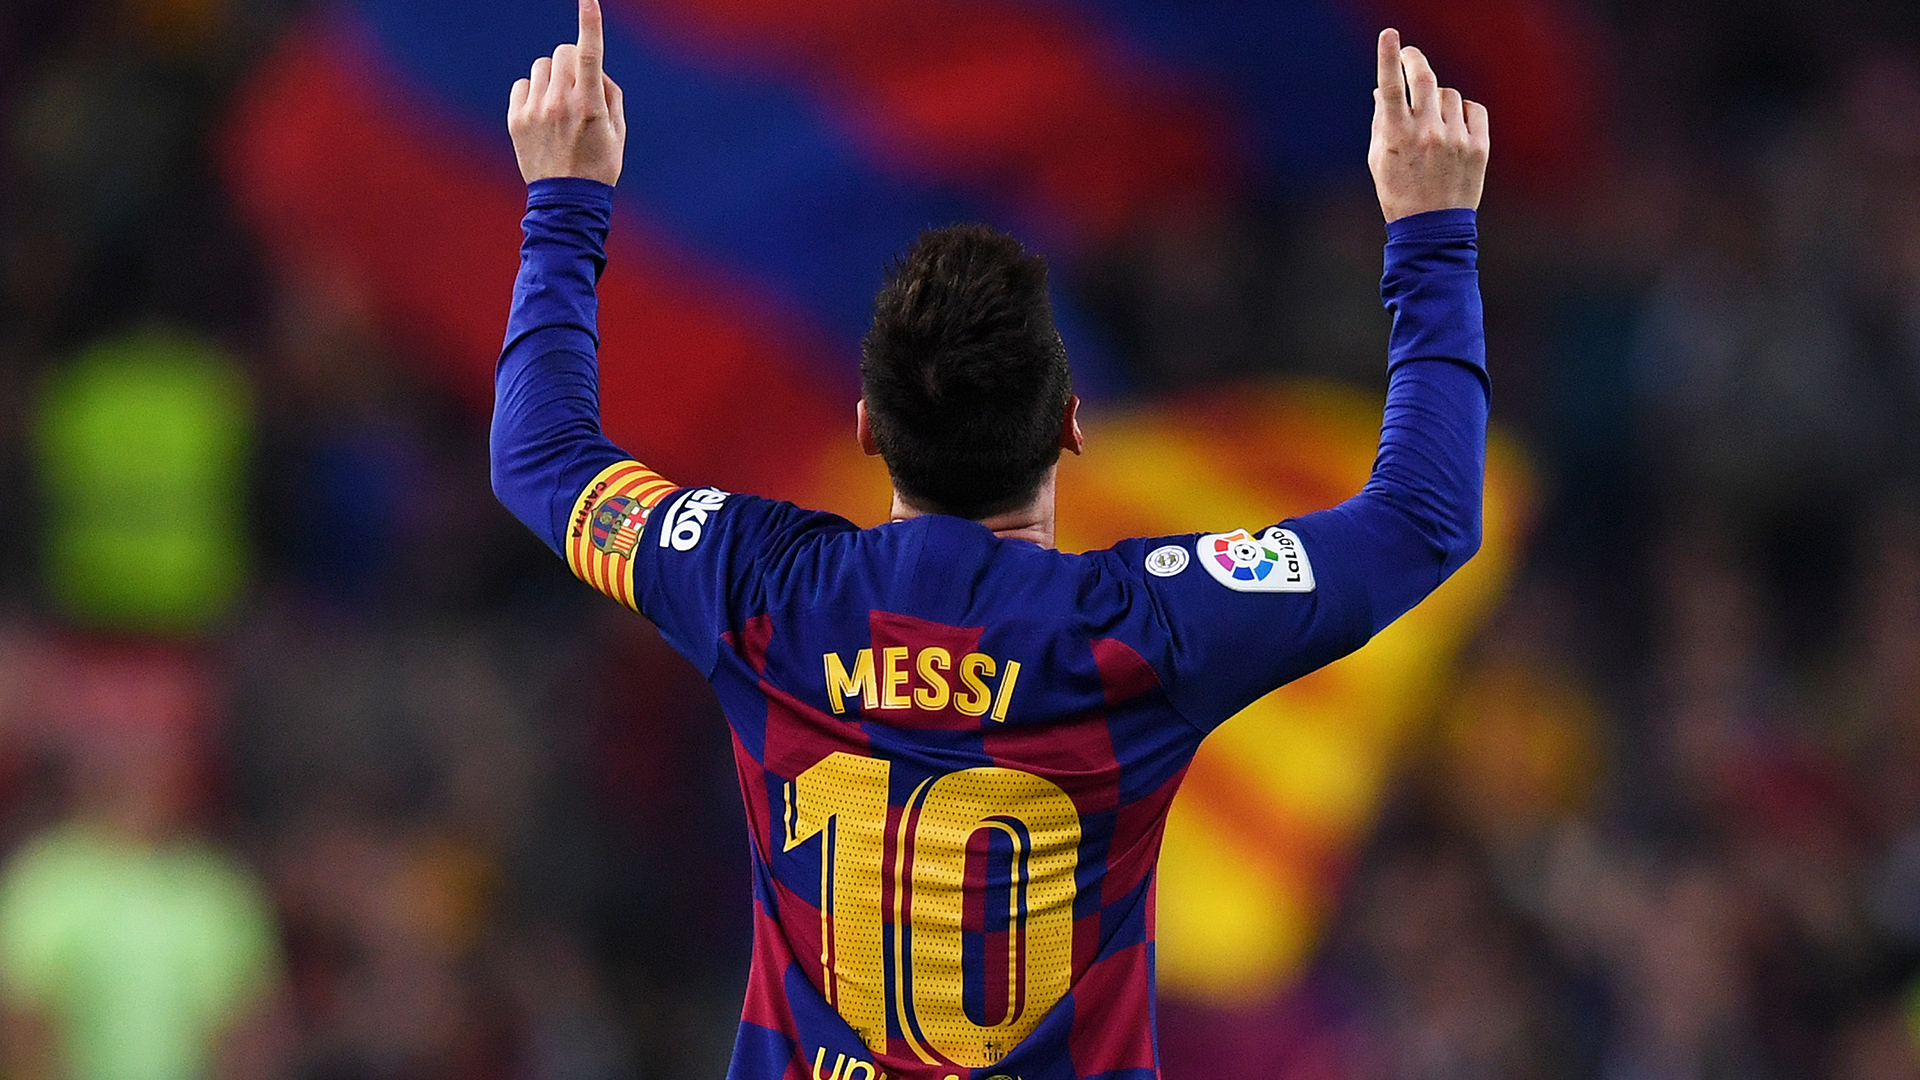 'Without a doubt' Messi is the best ever, says Bartomeu